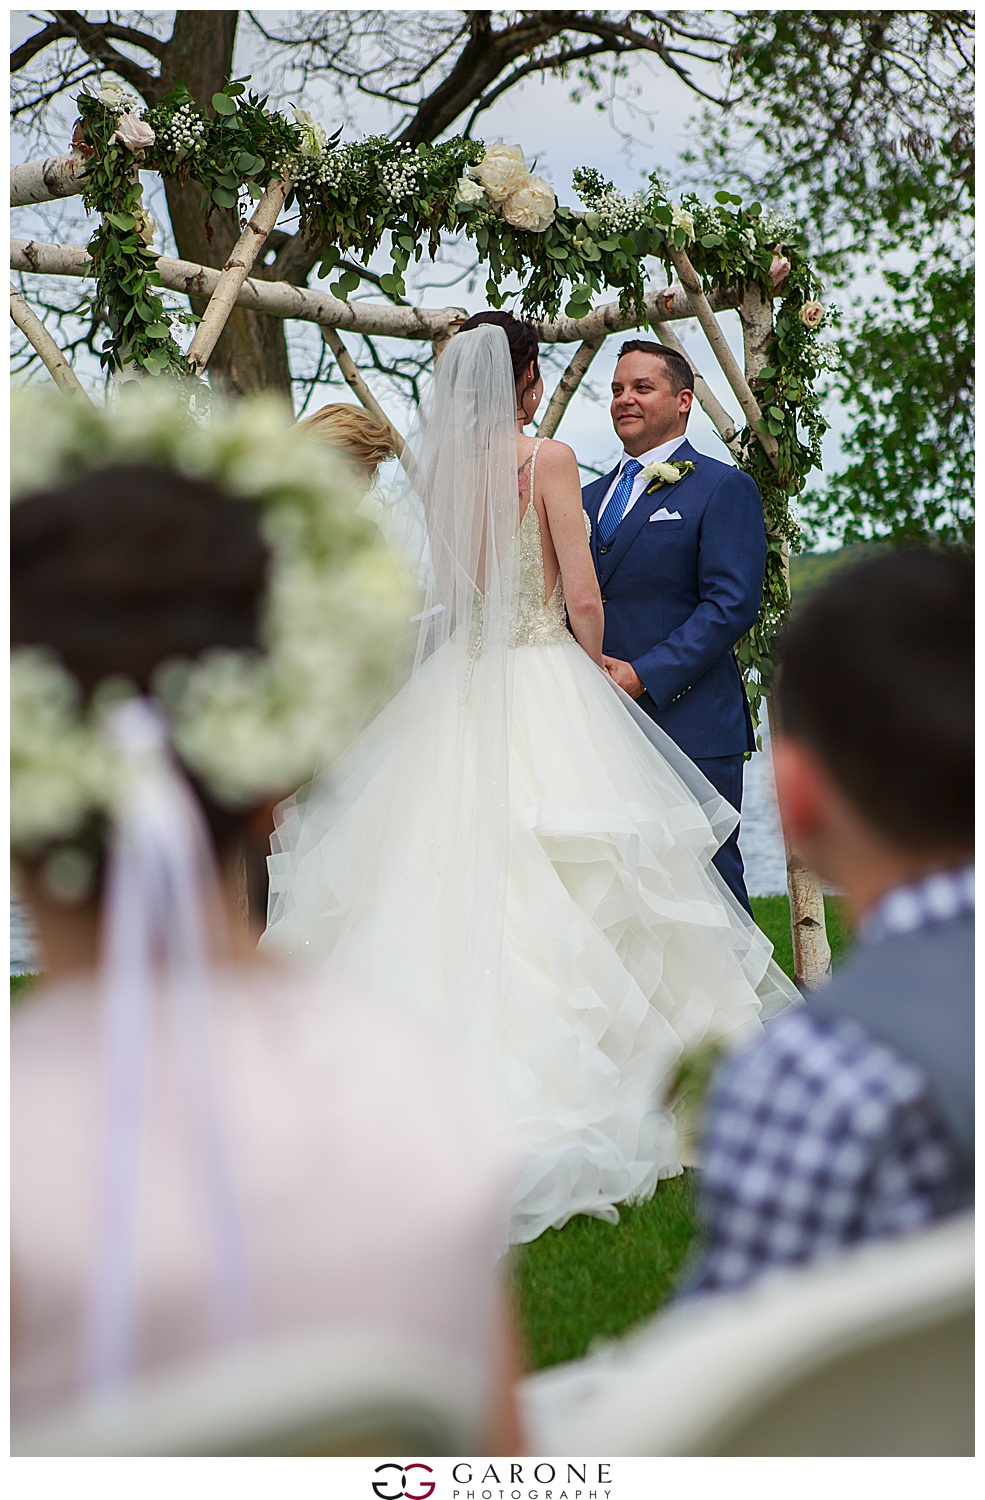 Shauna_Nathan_Carriage_House_Chuch_Landing_Lake_Winnapausakee_Wedding_0017.jpg